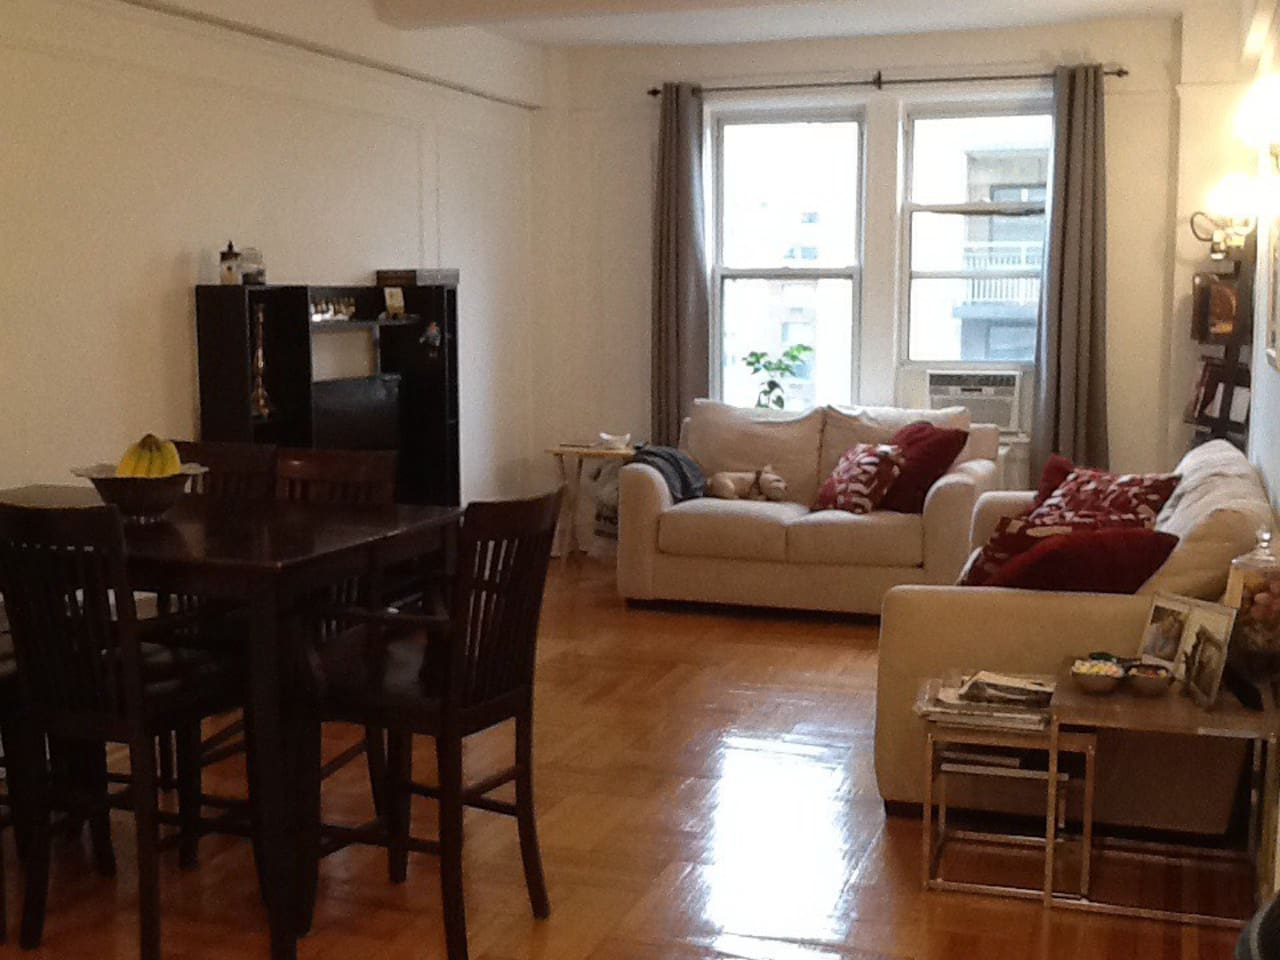 1 dining room table that seats 8 comfortably. 2 comfortable couches. TV with cable and wifi.